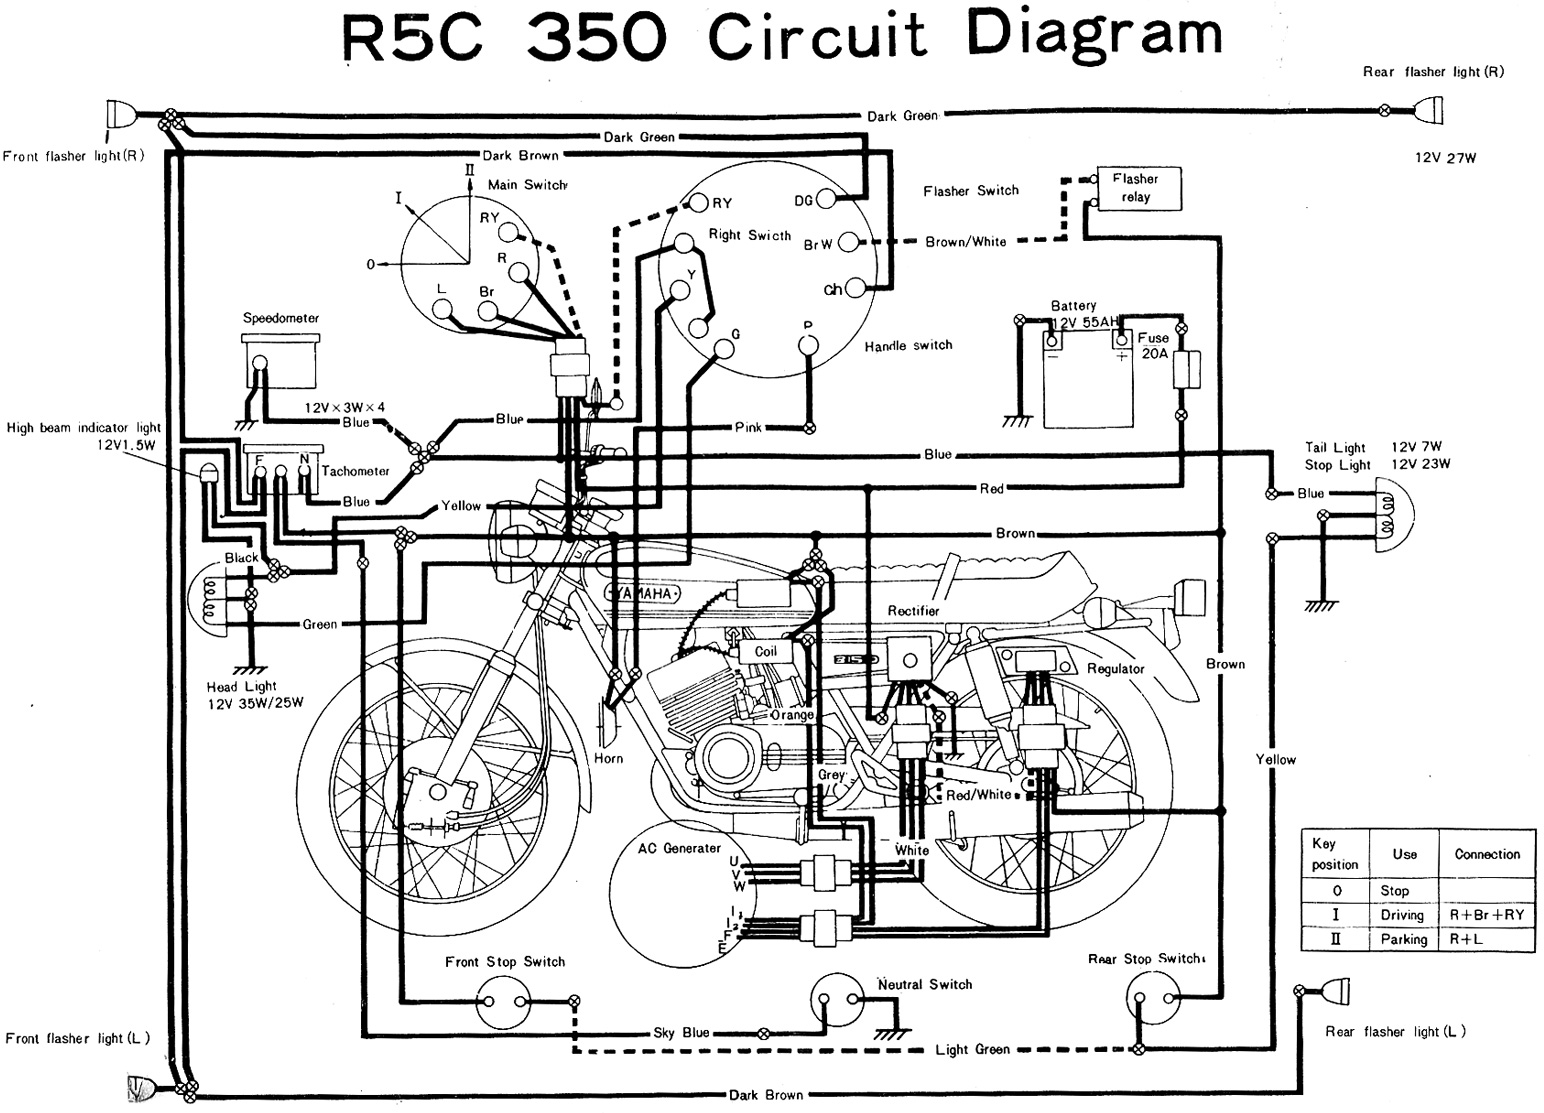 Yamaha RD350 R5C Wiring Diagram yamaha rd350 r5c wiring diagram evan fell motorcycle worksevan Tucker 48 Engine at bayanpartner.co